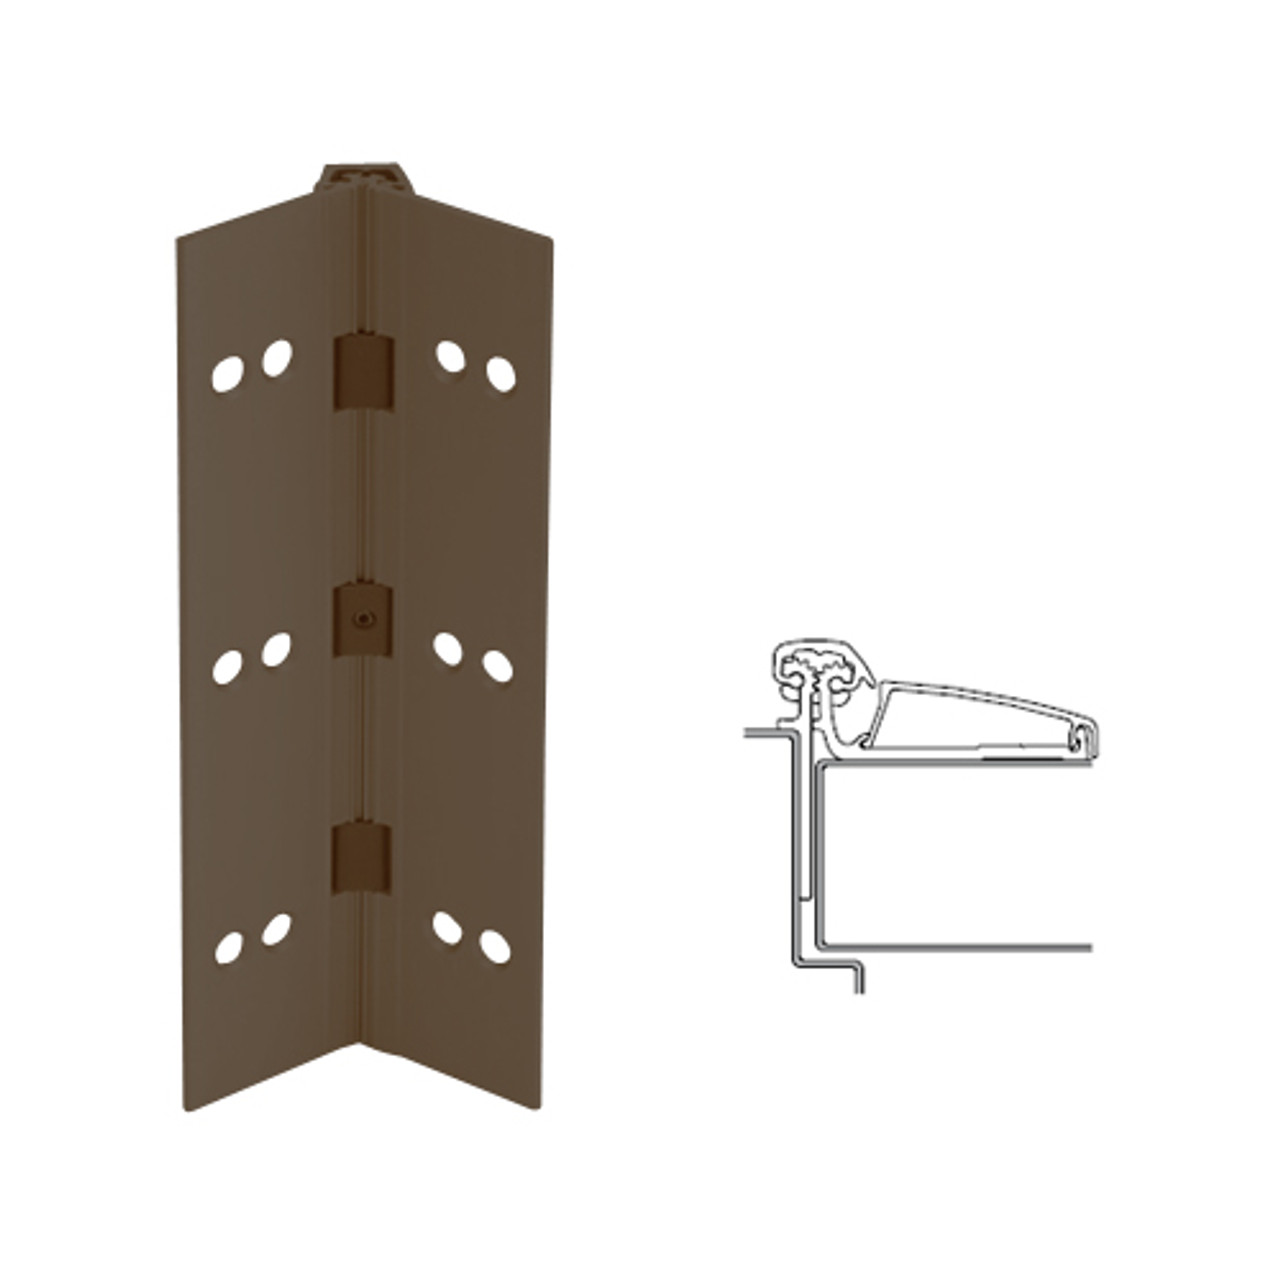 045XY-313AN-95 IVES Adjustable Half Surface Continuous Geared Hinges in Dark Bronze Anodized